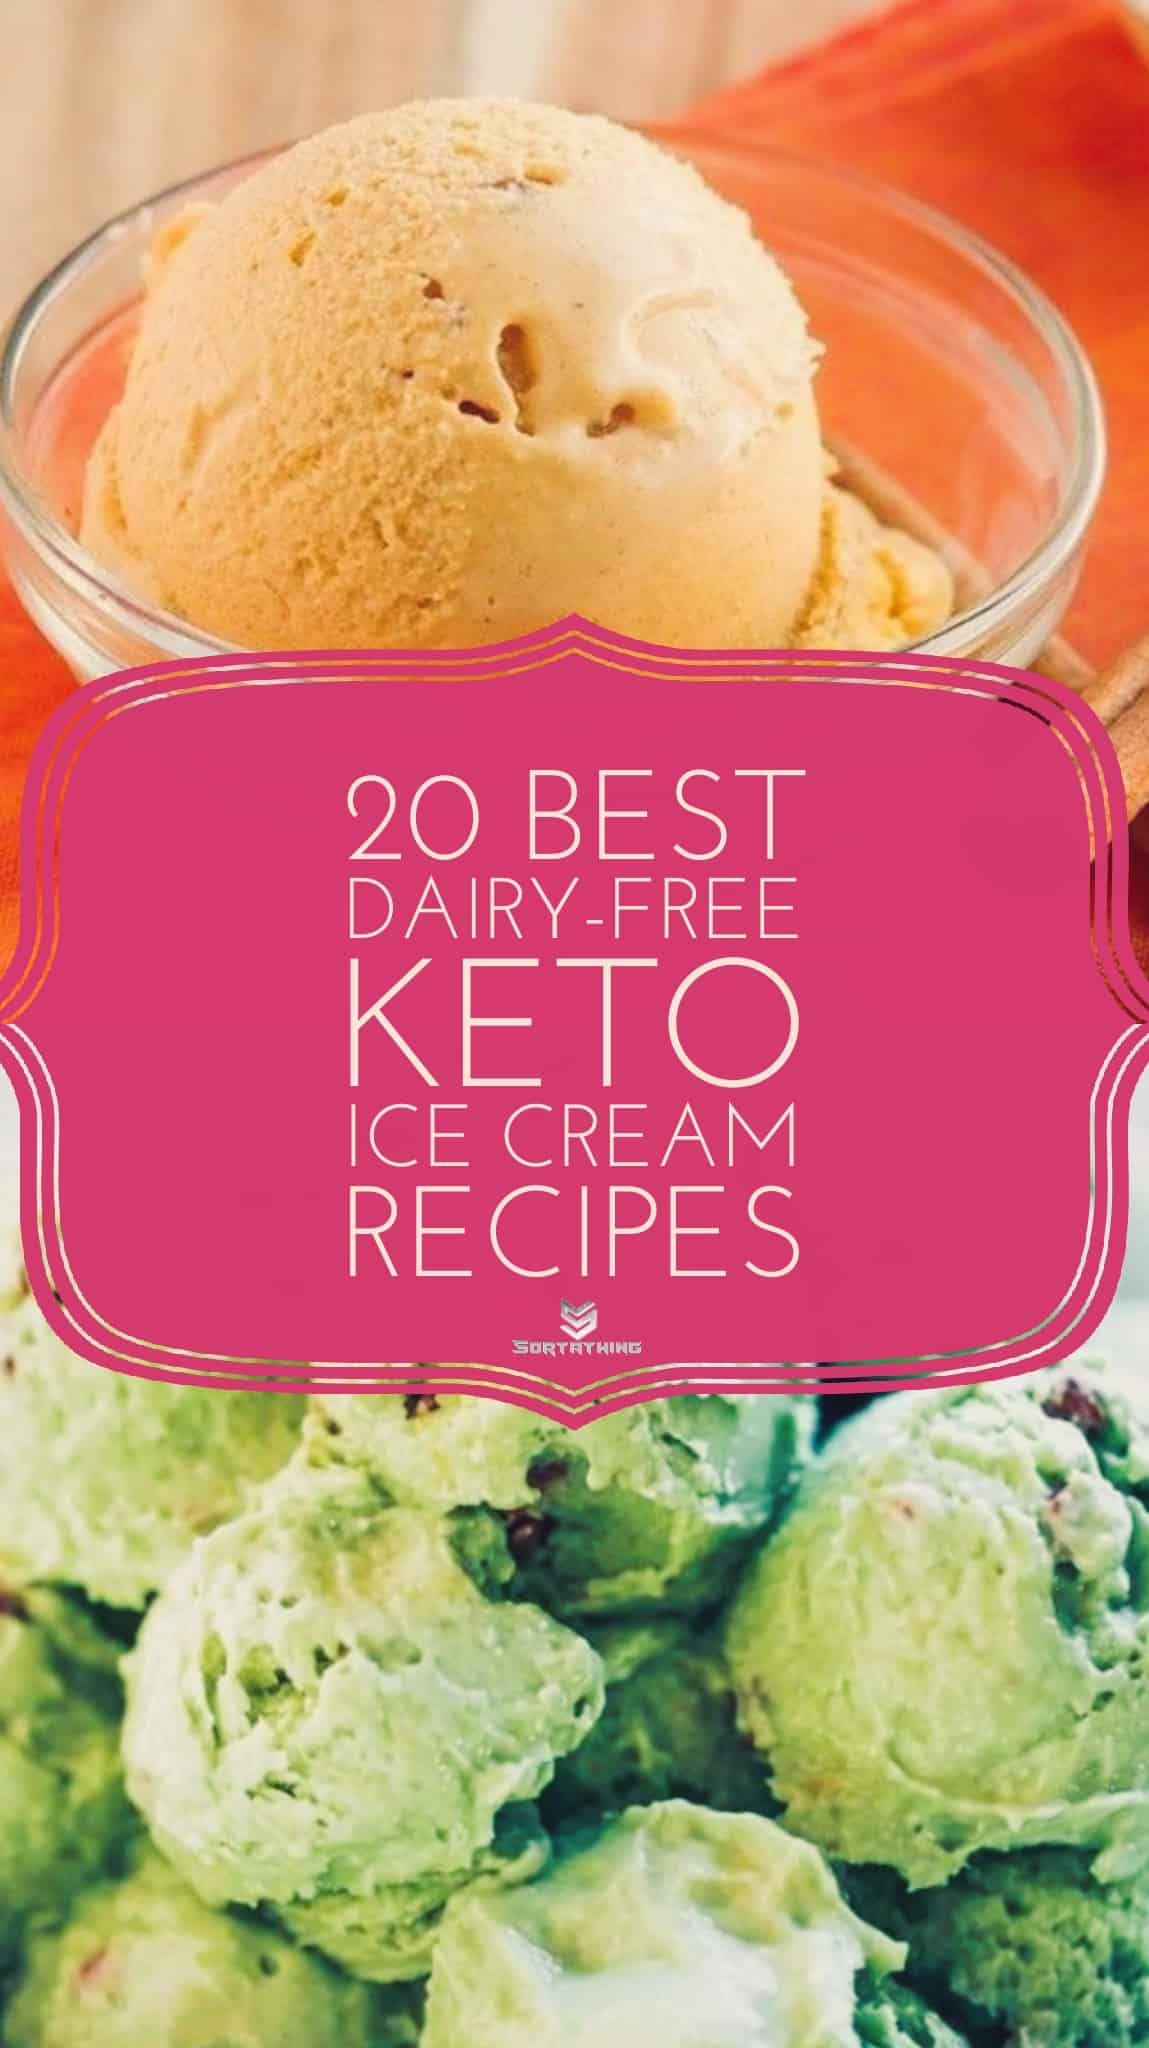 20 Best Keto Dairy Free Ice Cream Recipes 1 - Sortathing Food & Health